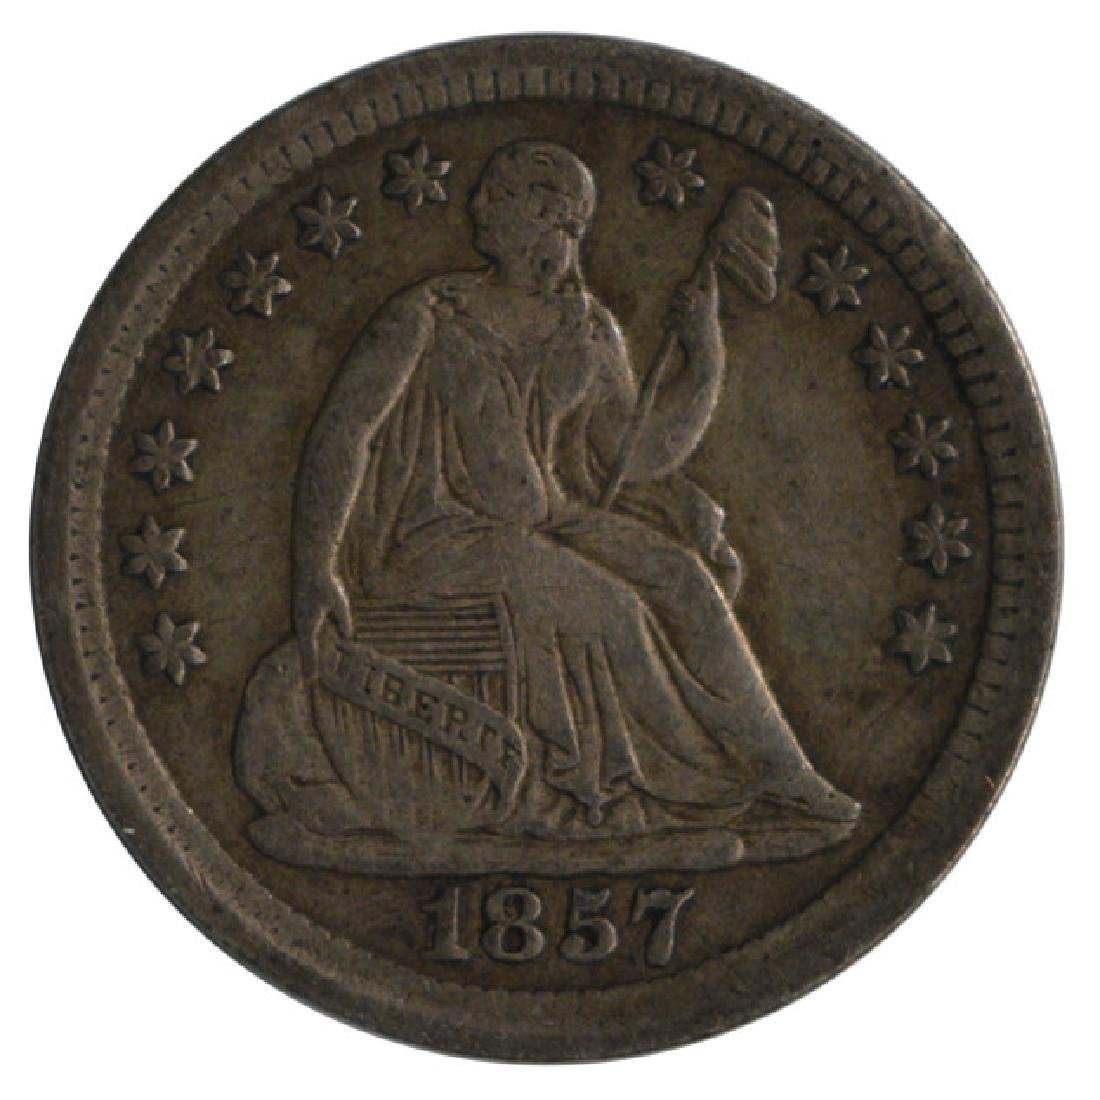 1857 Seated Liberty Half Dime Coin